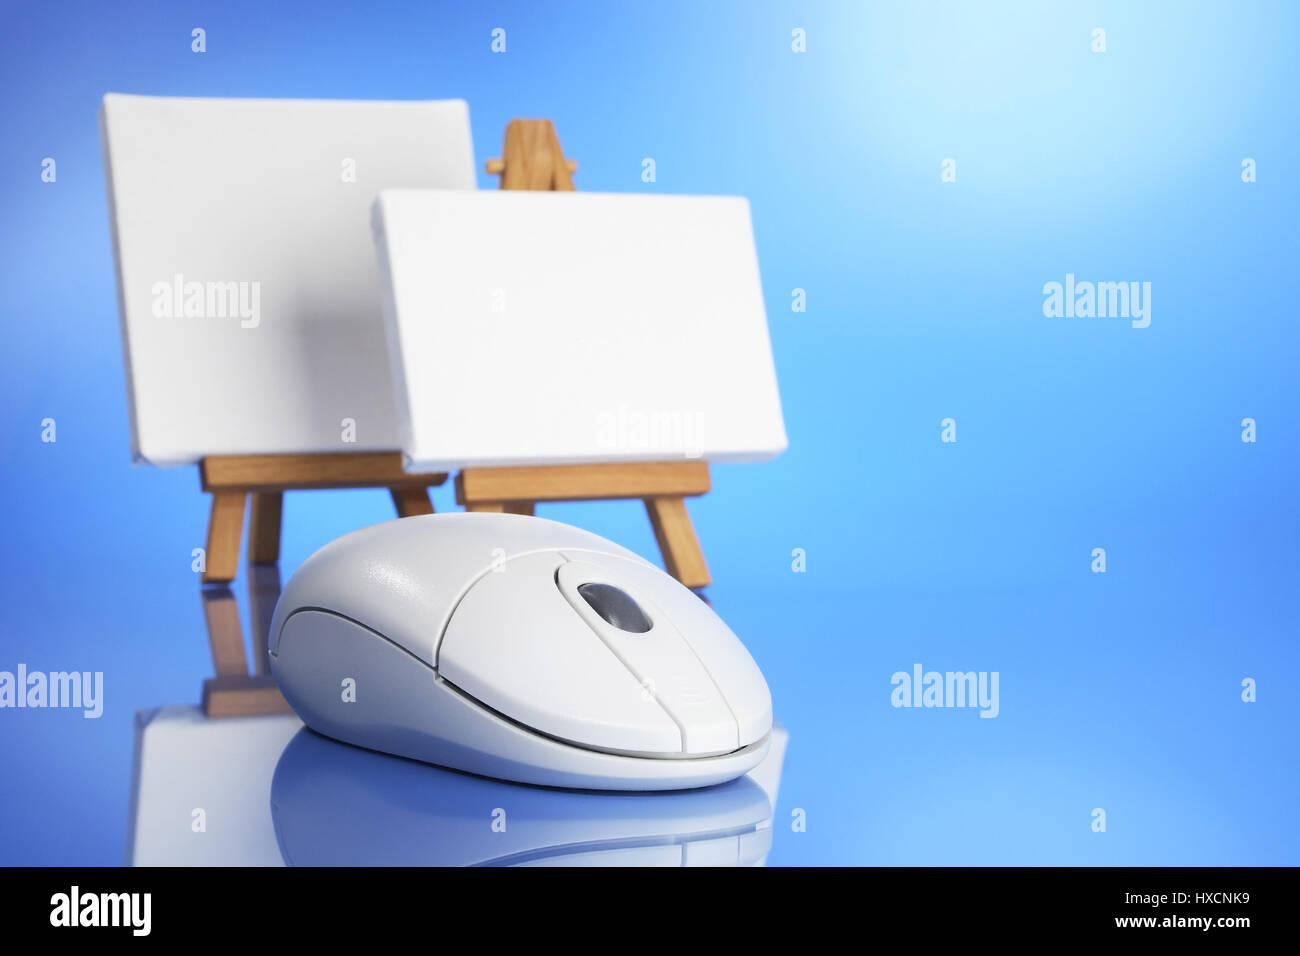 Mouse with easel and canvas, Maus mit Staffelei und Leinwand - Stock Image